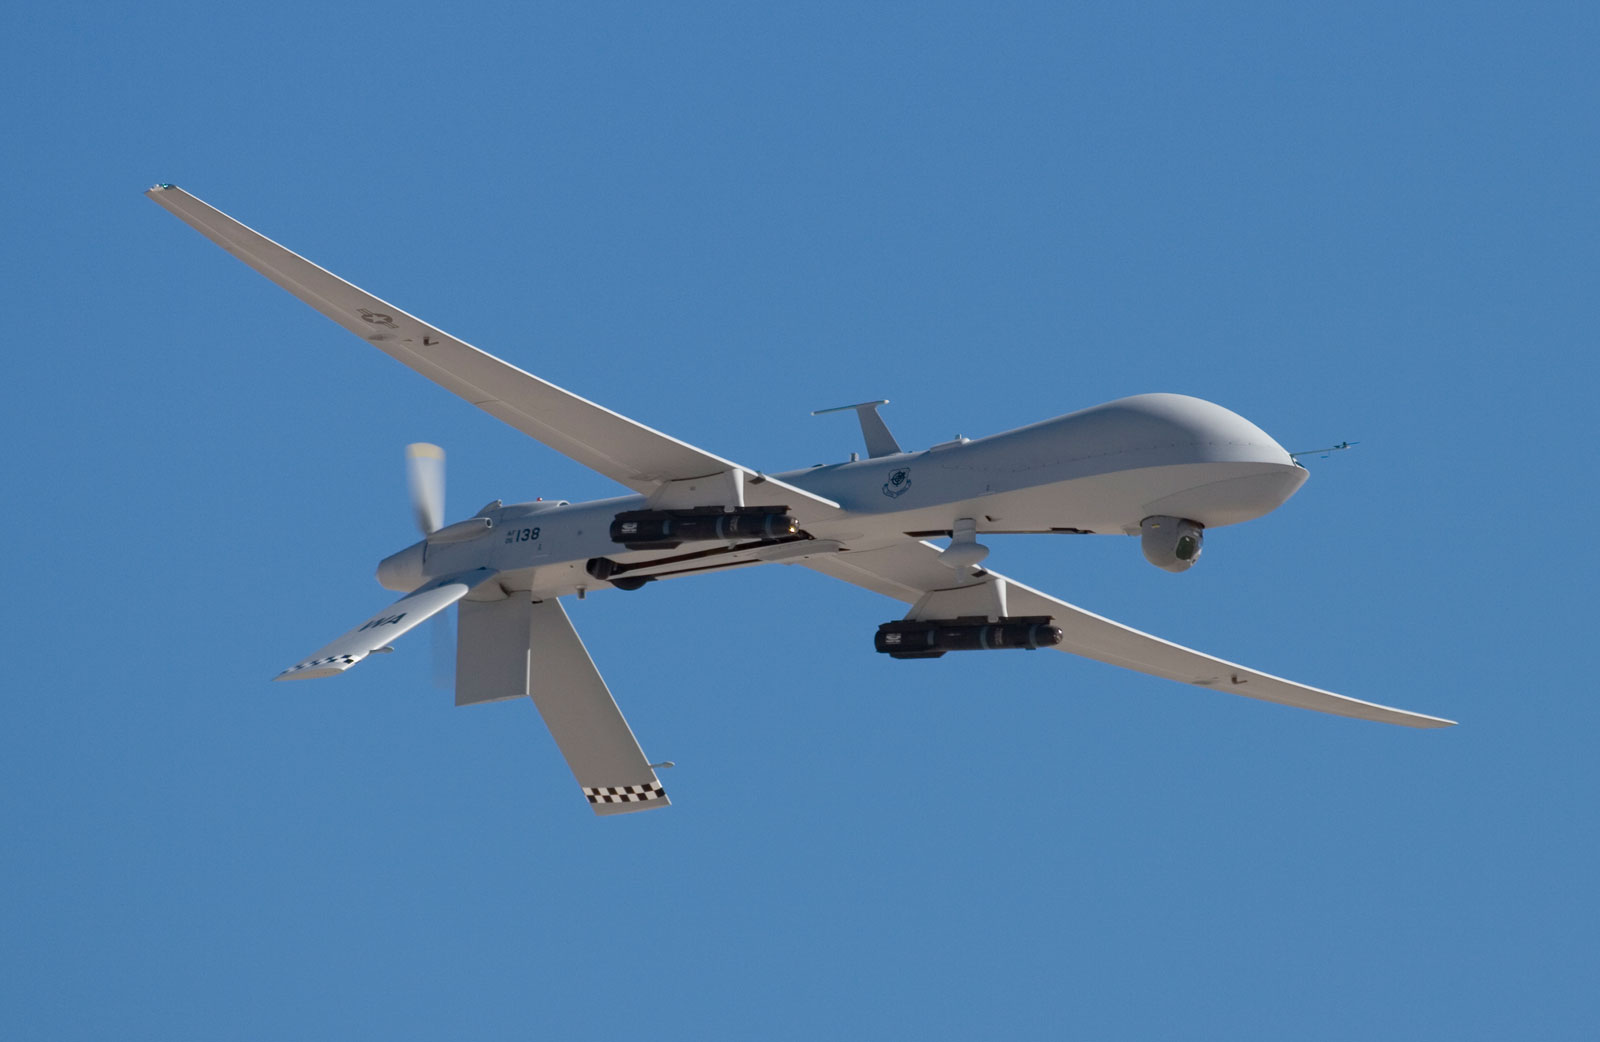 scan eagle drone with U S Drone Under Fire Near Iran on 176353 furthermore Watch besides Unmanned Weapons Mq 8 Fire Scout as well Iran Captures Foreign Drone Trying Enter Nations Airspace further Insitu And Boeing Being Sued Over Landing System Patents.